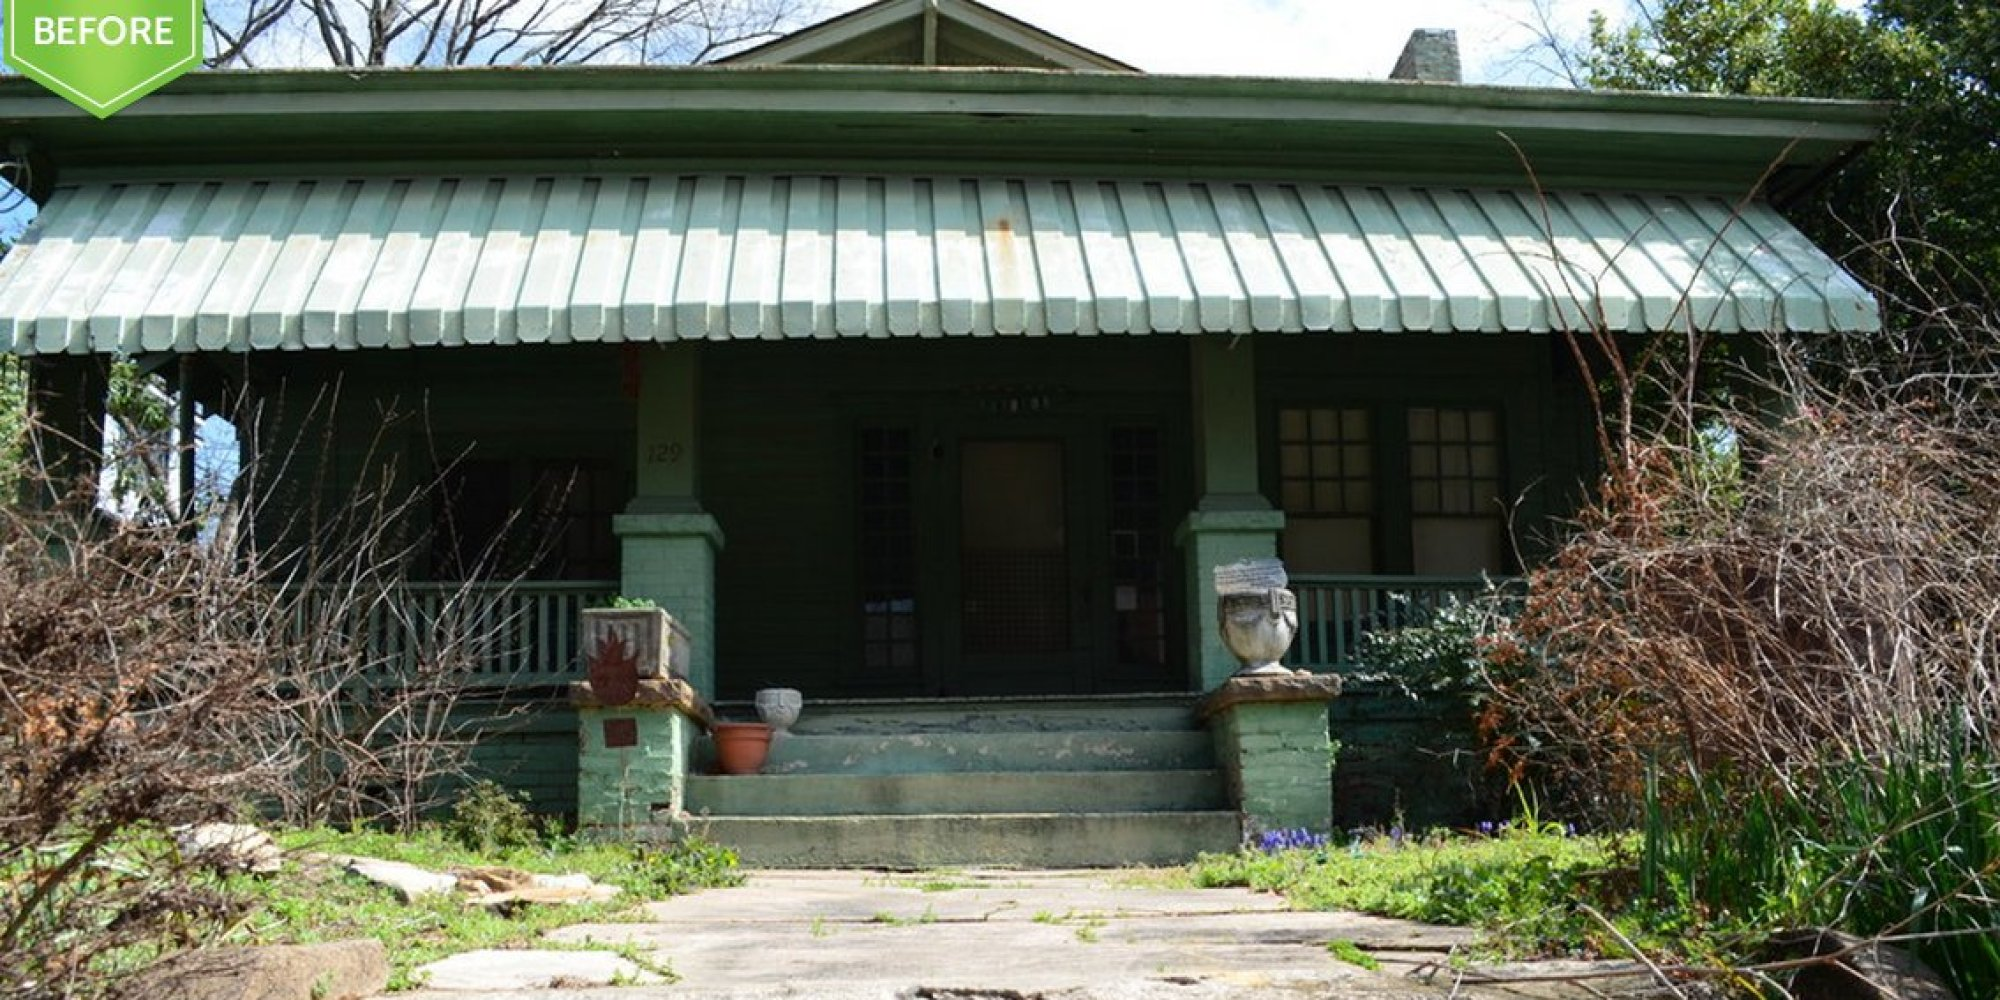 6 Stunning Home Exterior Makeovers You Have To See To Believe Before After Photos Huffpost